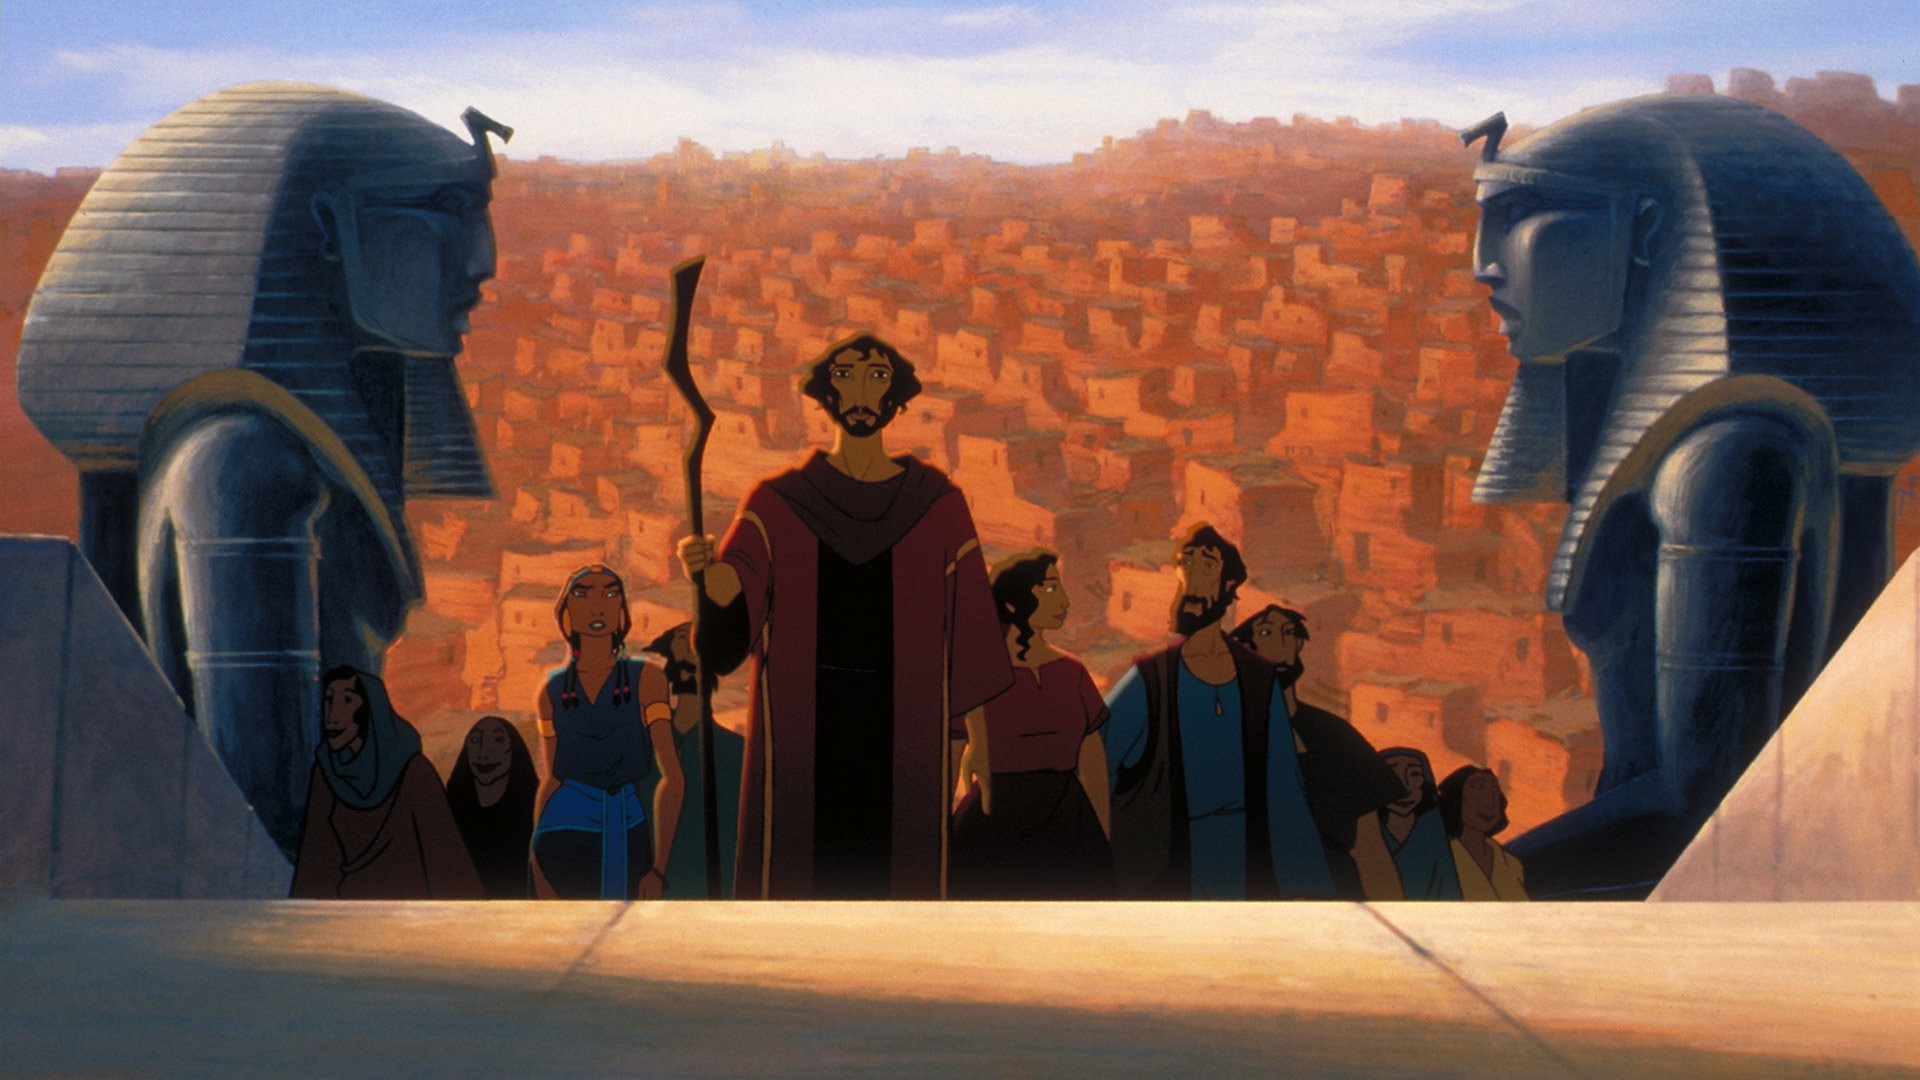 #65) The Prince of Egypt - (1998 - dir. Brenda Chapman, Steve Hickner)